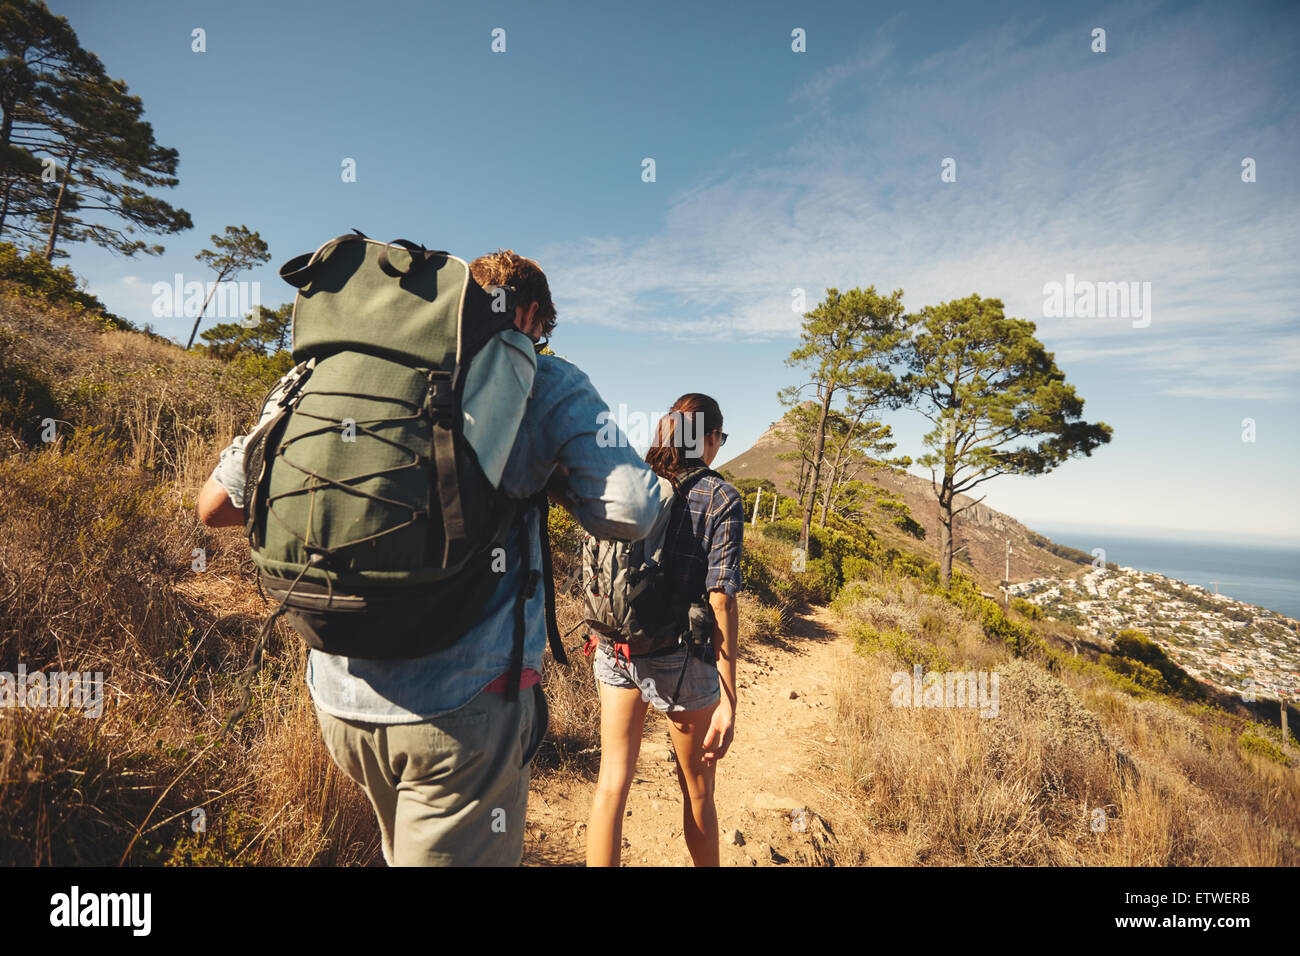 Rear view of two young people walking down the trail path on mountain. Young couple hiking with backpacks. - Stock Image